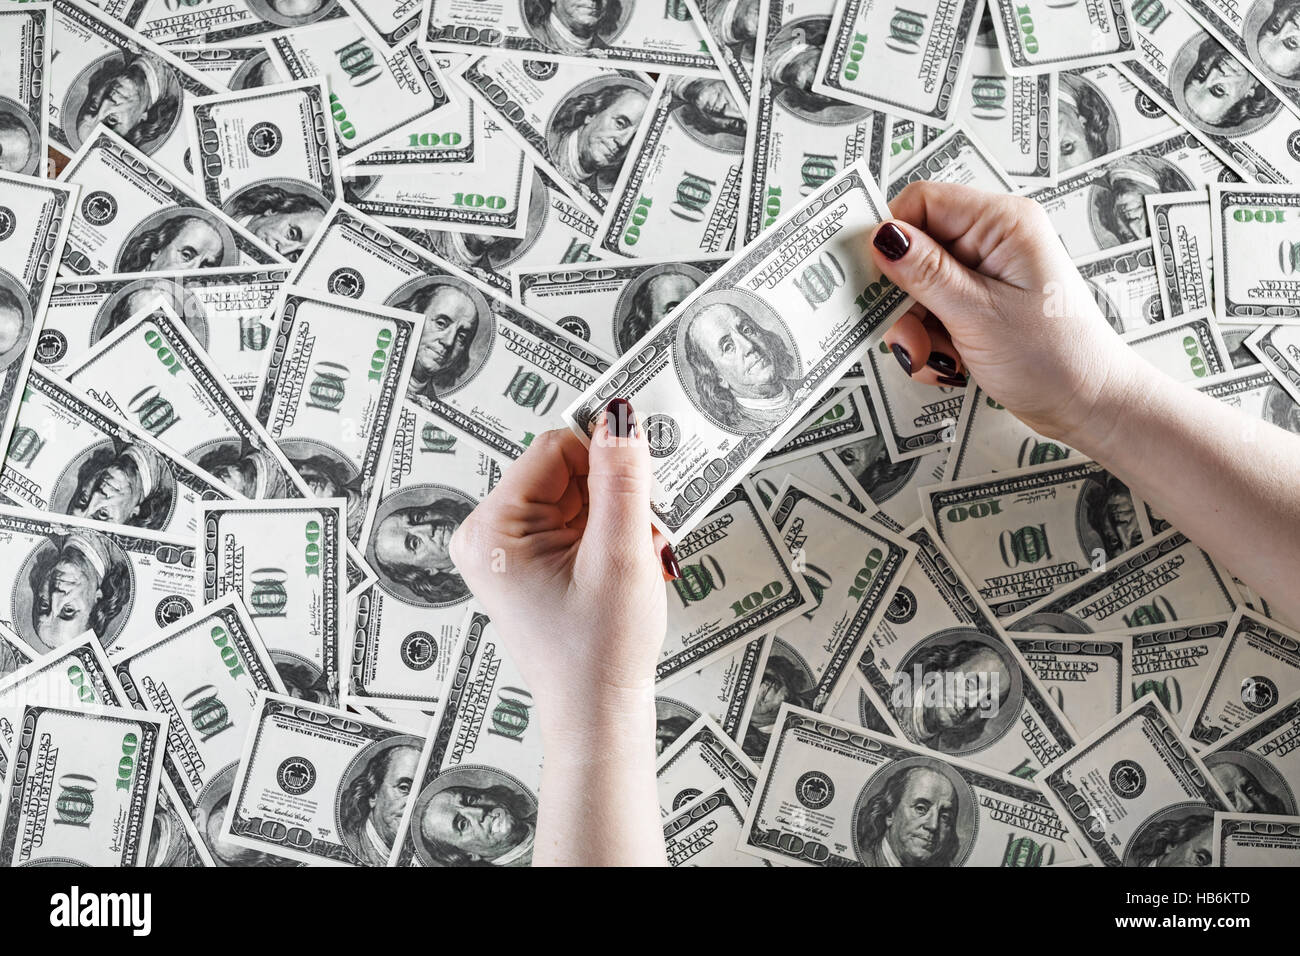 Check Money Stock Photos & Check Money Stock Images - Alamy